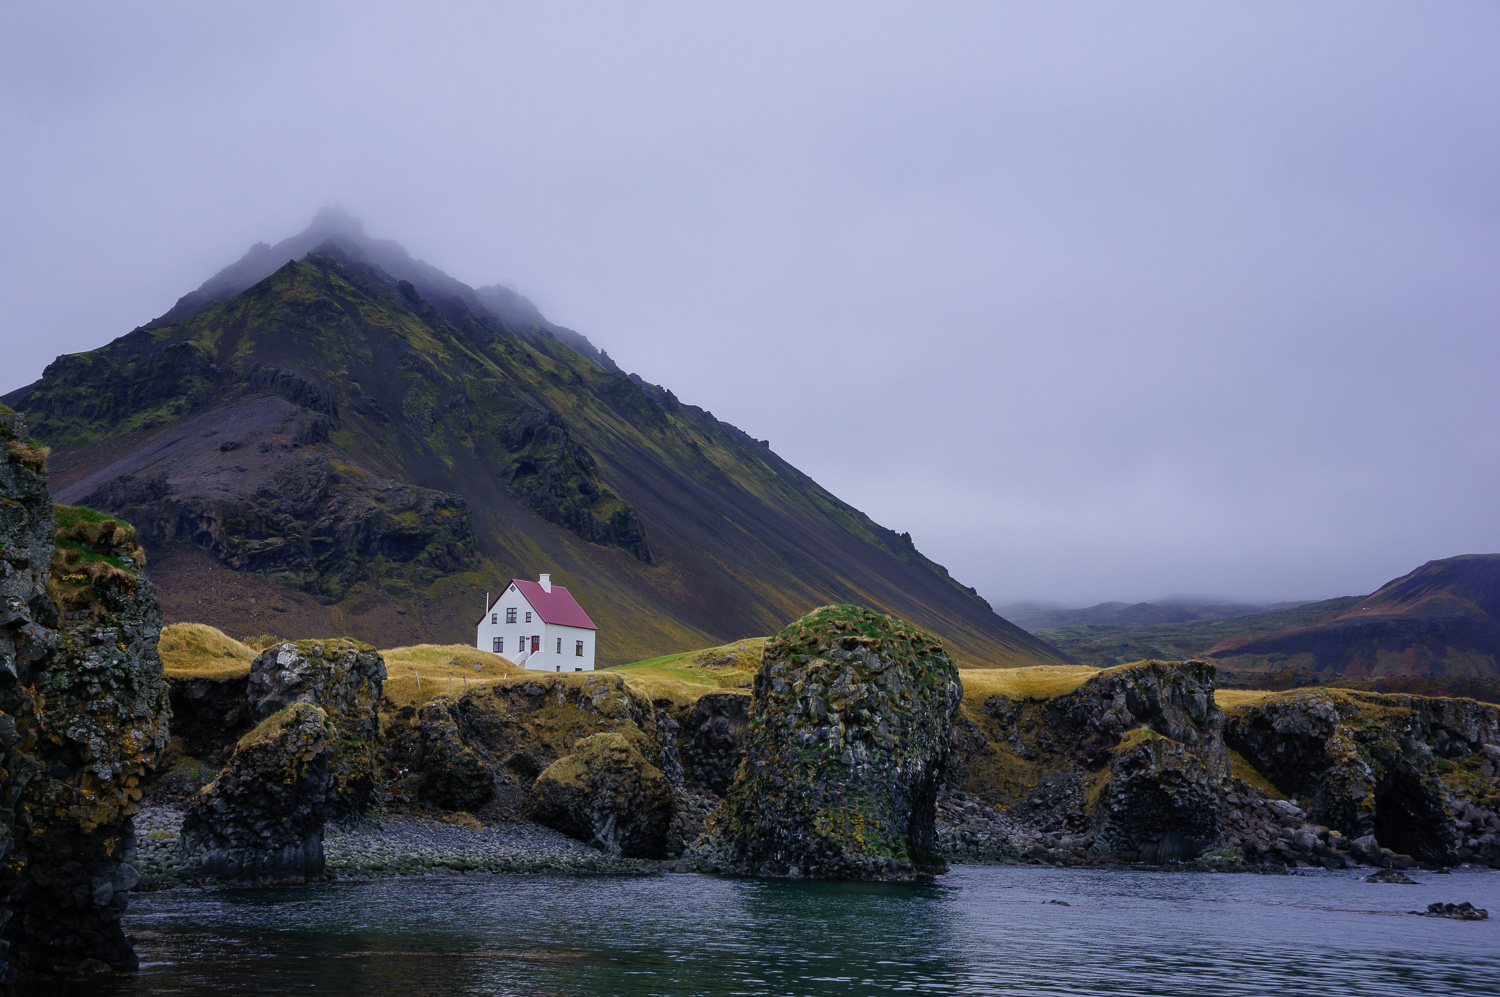 White House in Arnarstapi Harbor, Iceland - Beginner's Guide to Natural Light in Landscape Photography